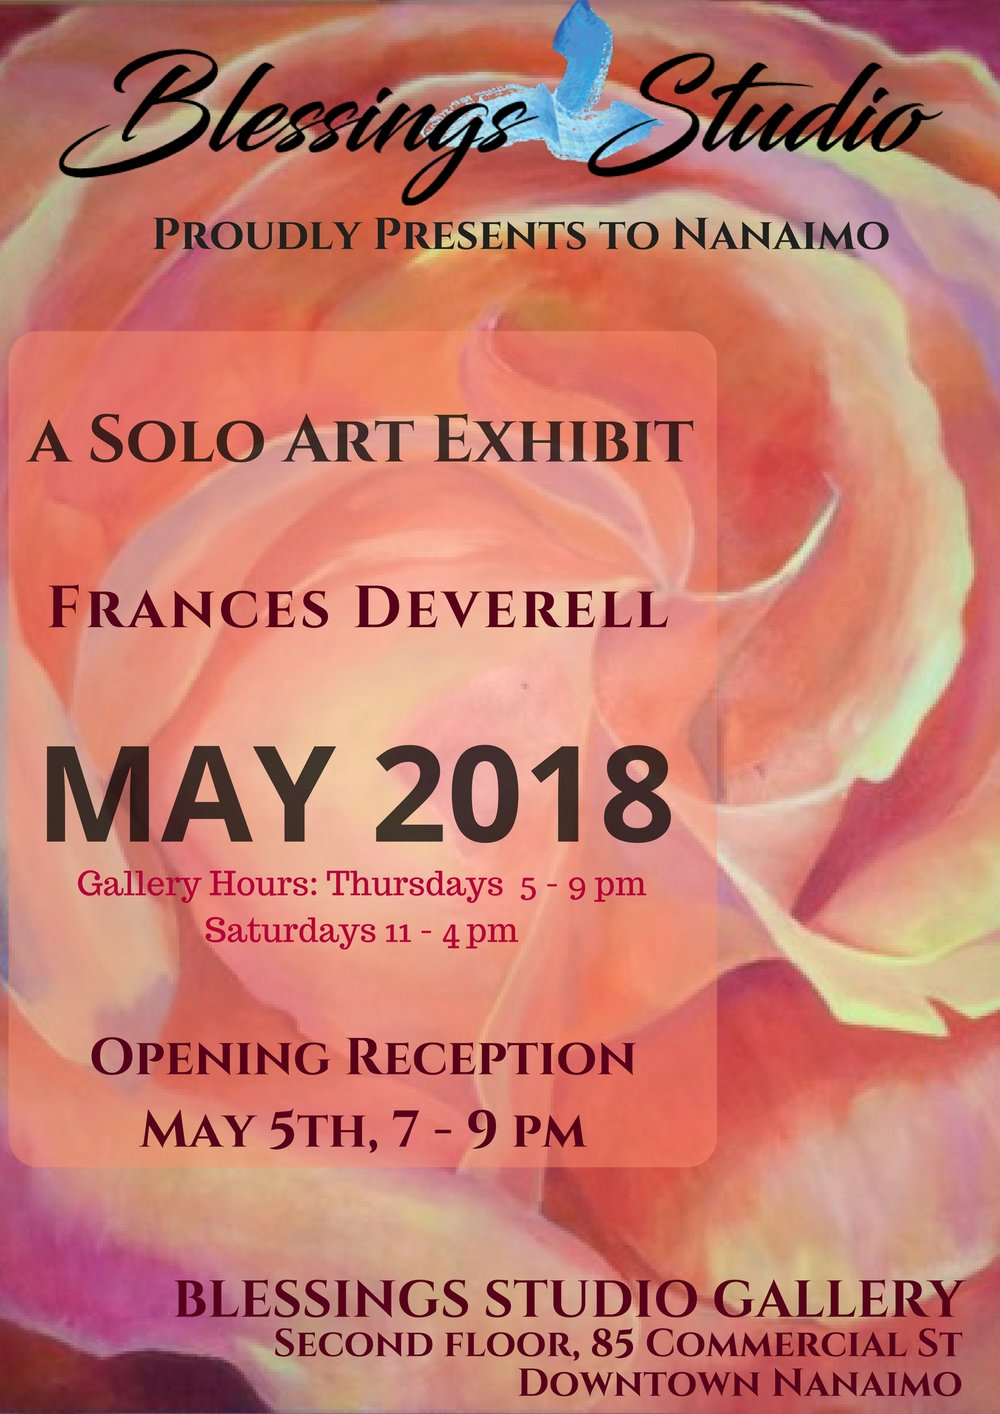 May, Feature Artist Frances Deverell - Frances uses art to connect with her inner self and with spirit. Seeking connection with the wonders of nature, the miracle of life, and with beauty. Believing we need this vision of wholeness and harmony with the earth and with life to sustain us on the justice journey.